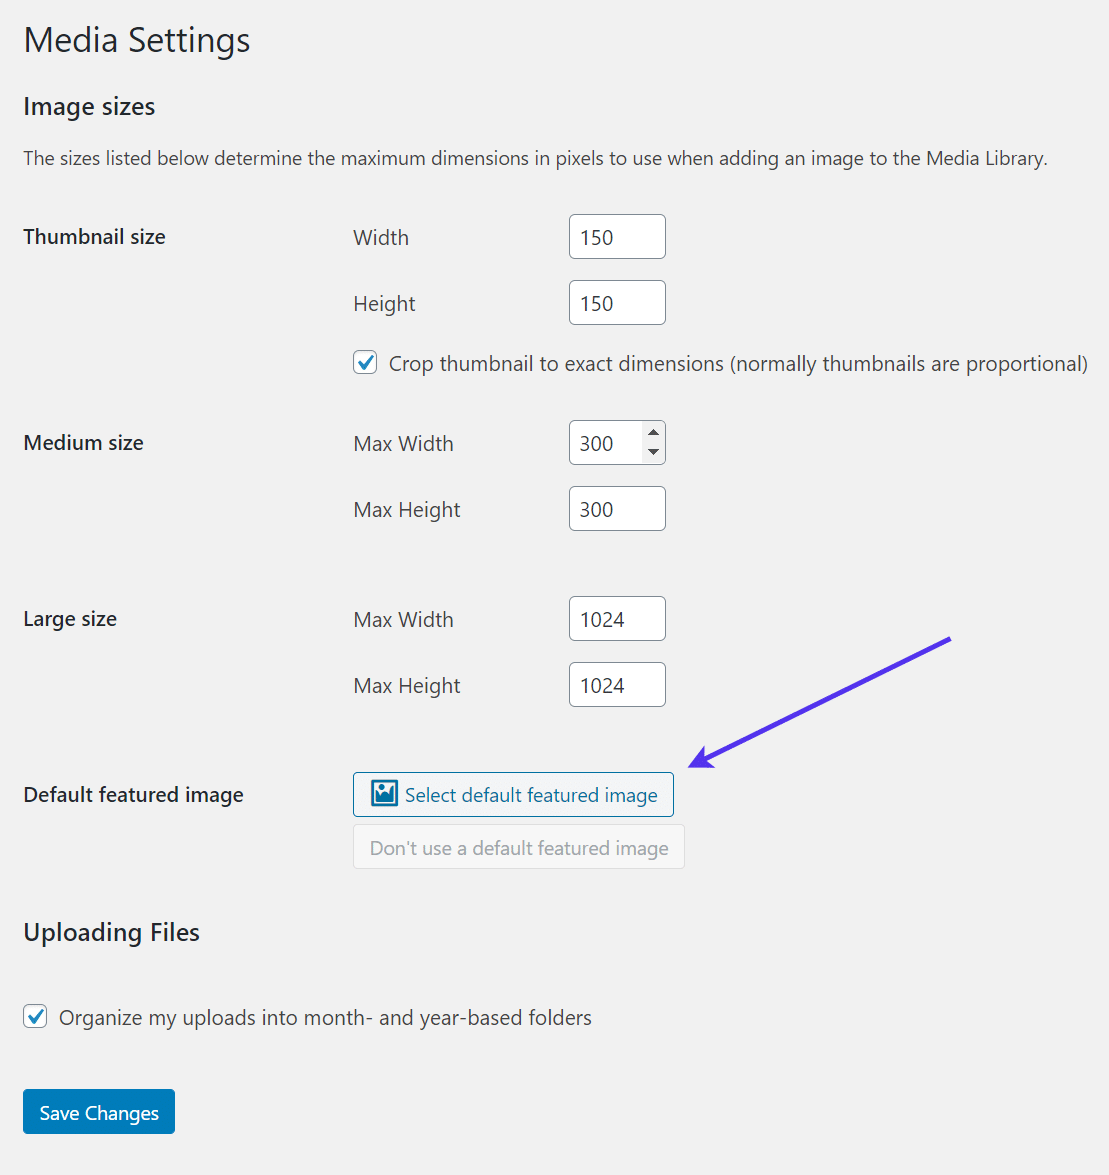 Select the default featured image